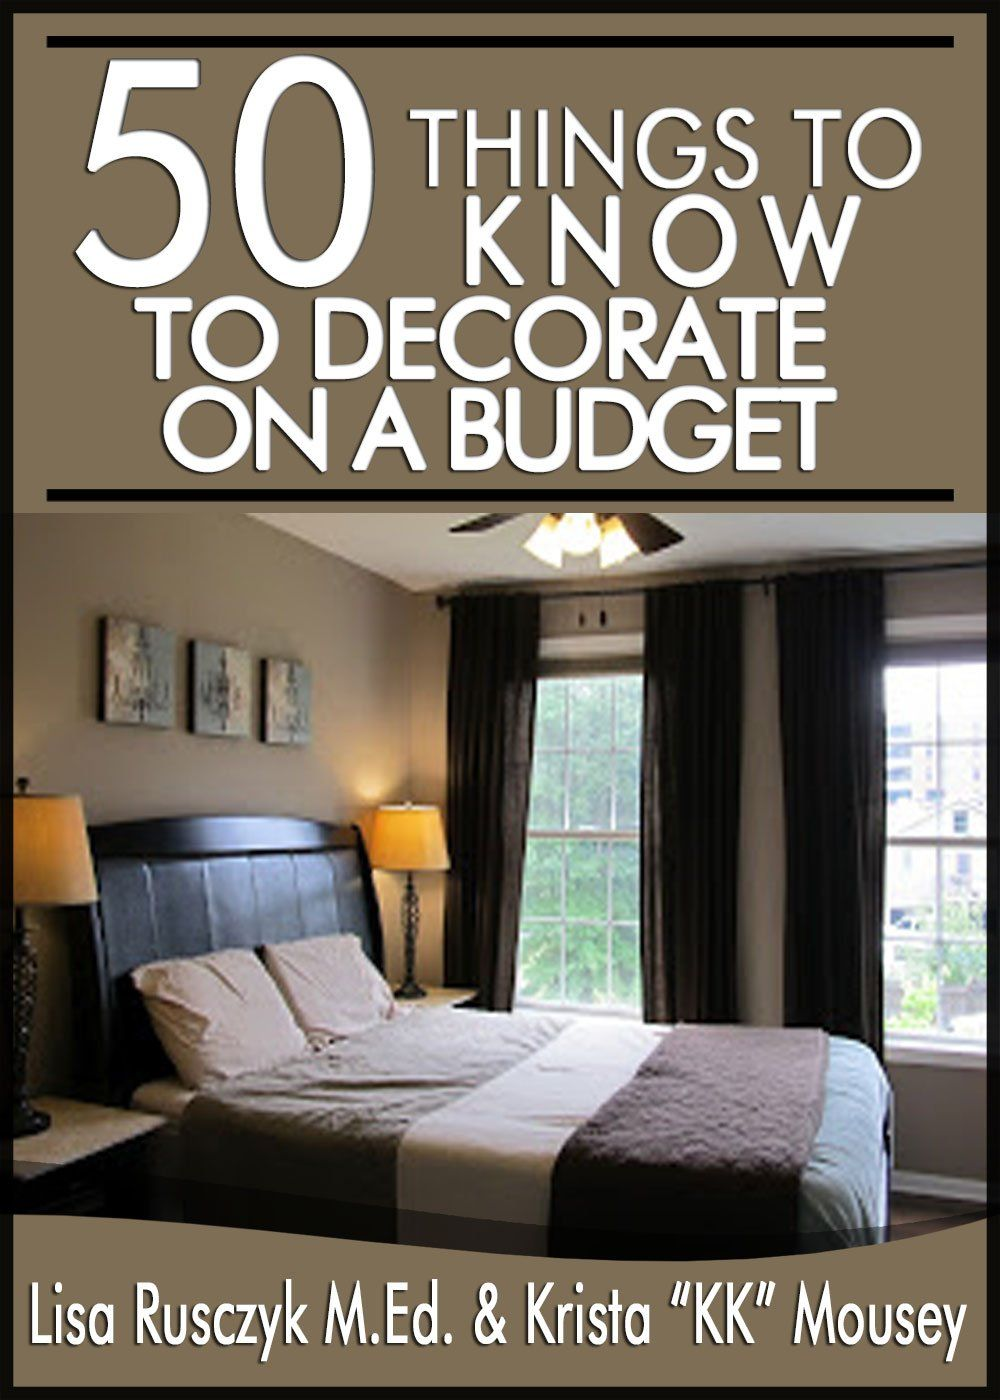 50 Things To Know To Decorate Your Home On A Budget Transform Your House Inside And Out Home Home Decor Decorating Your Home